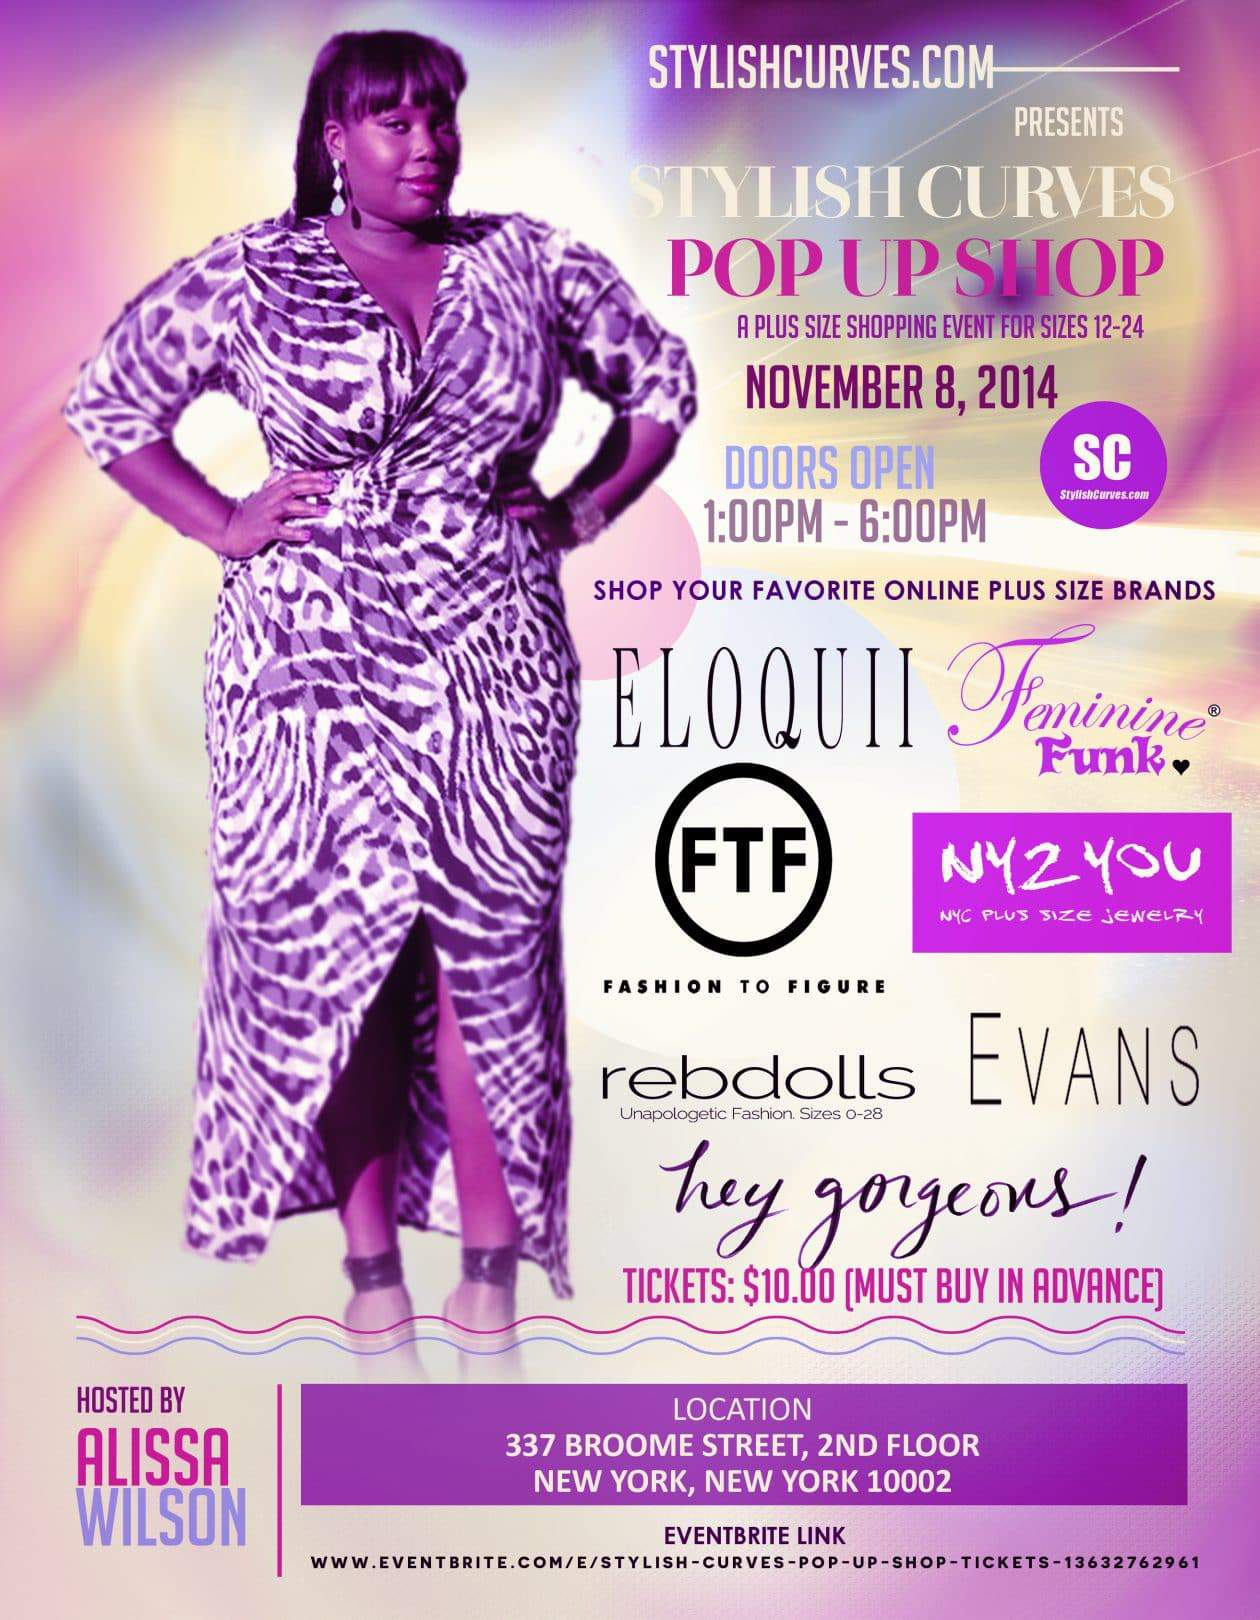 COOL NEWS: NY Plus Size Blogger, Alissa Launches the Stylish Curves Pop Up Shop